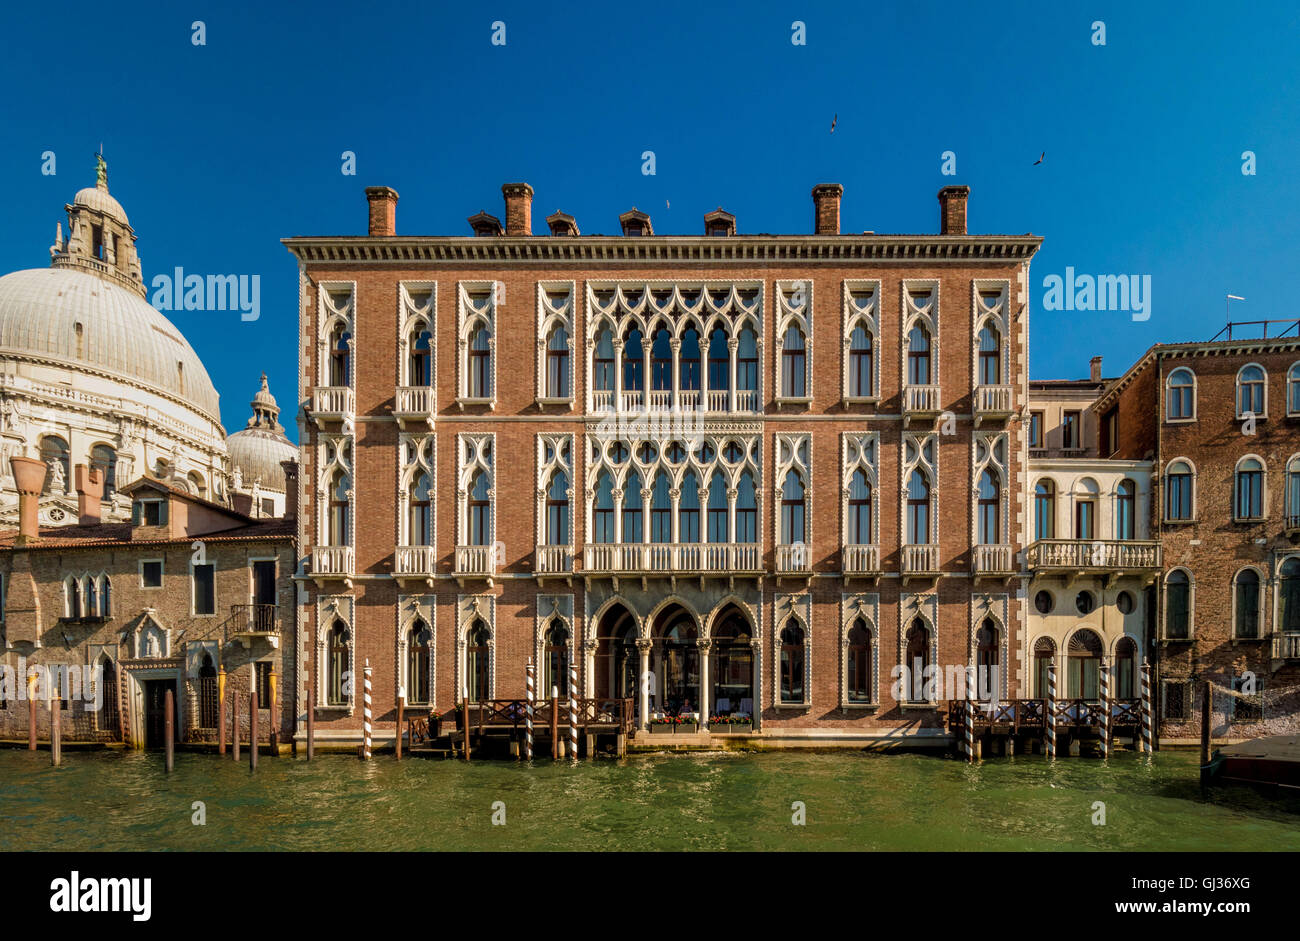 Traditional venetian palazzo buildings along the Grand Canal. Venice, Italy. - Stock Image